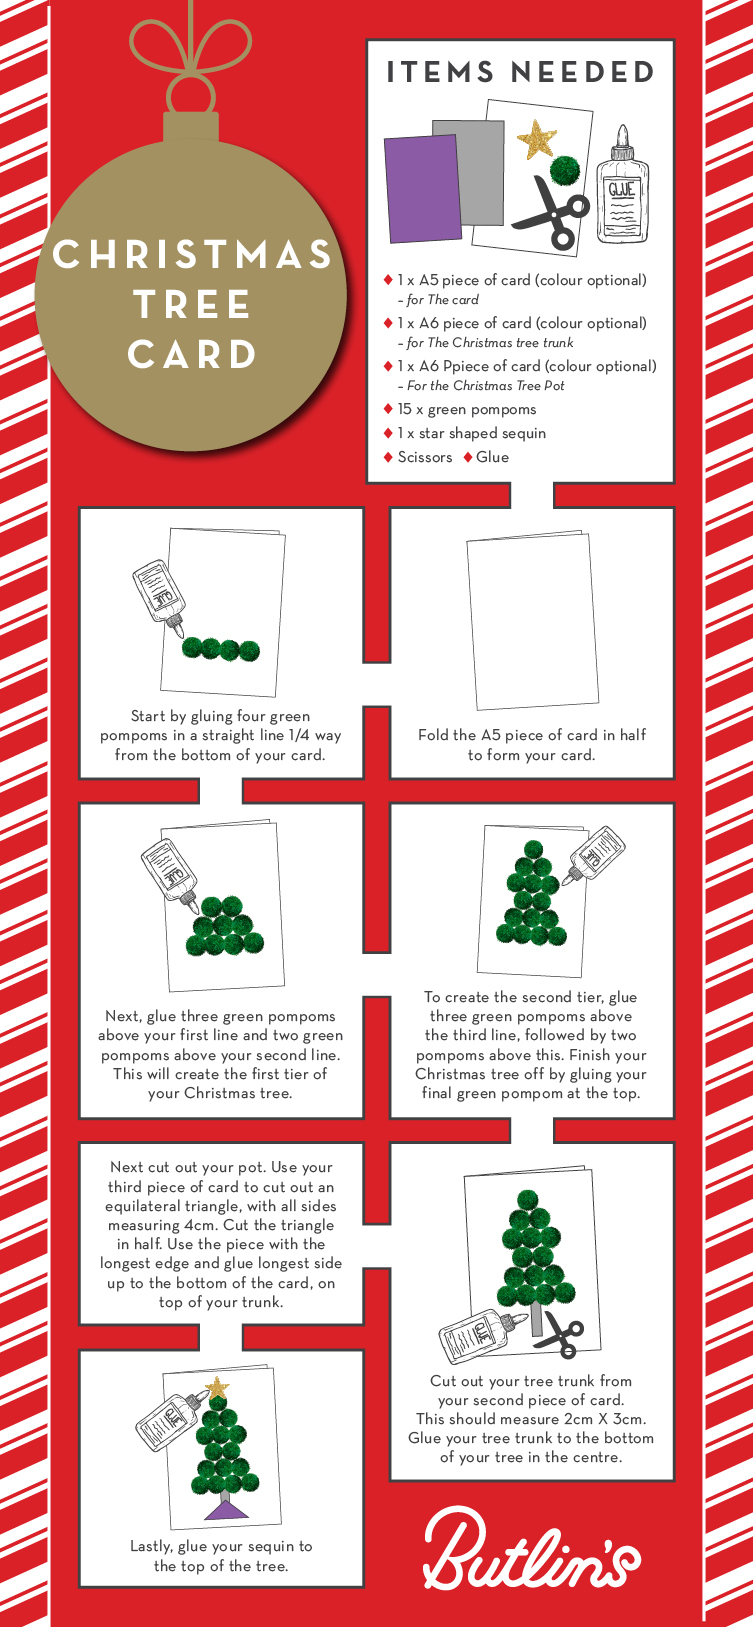 Christmas Tree card | Christmas how to | Butlins Blog